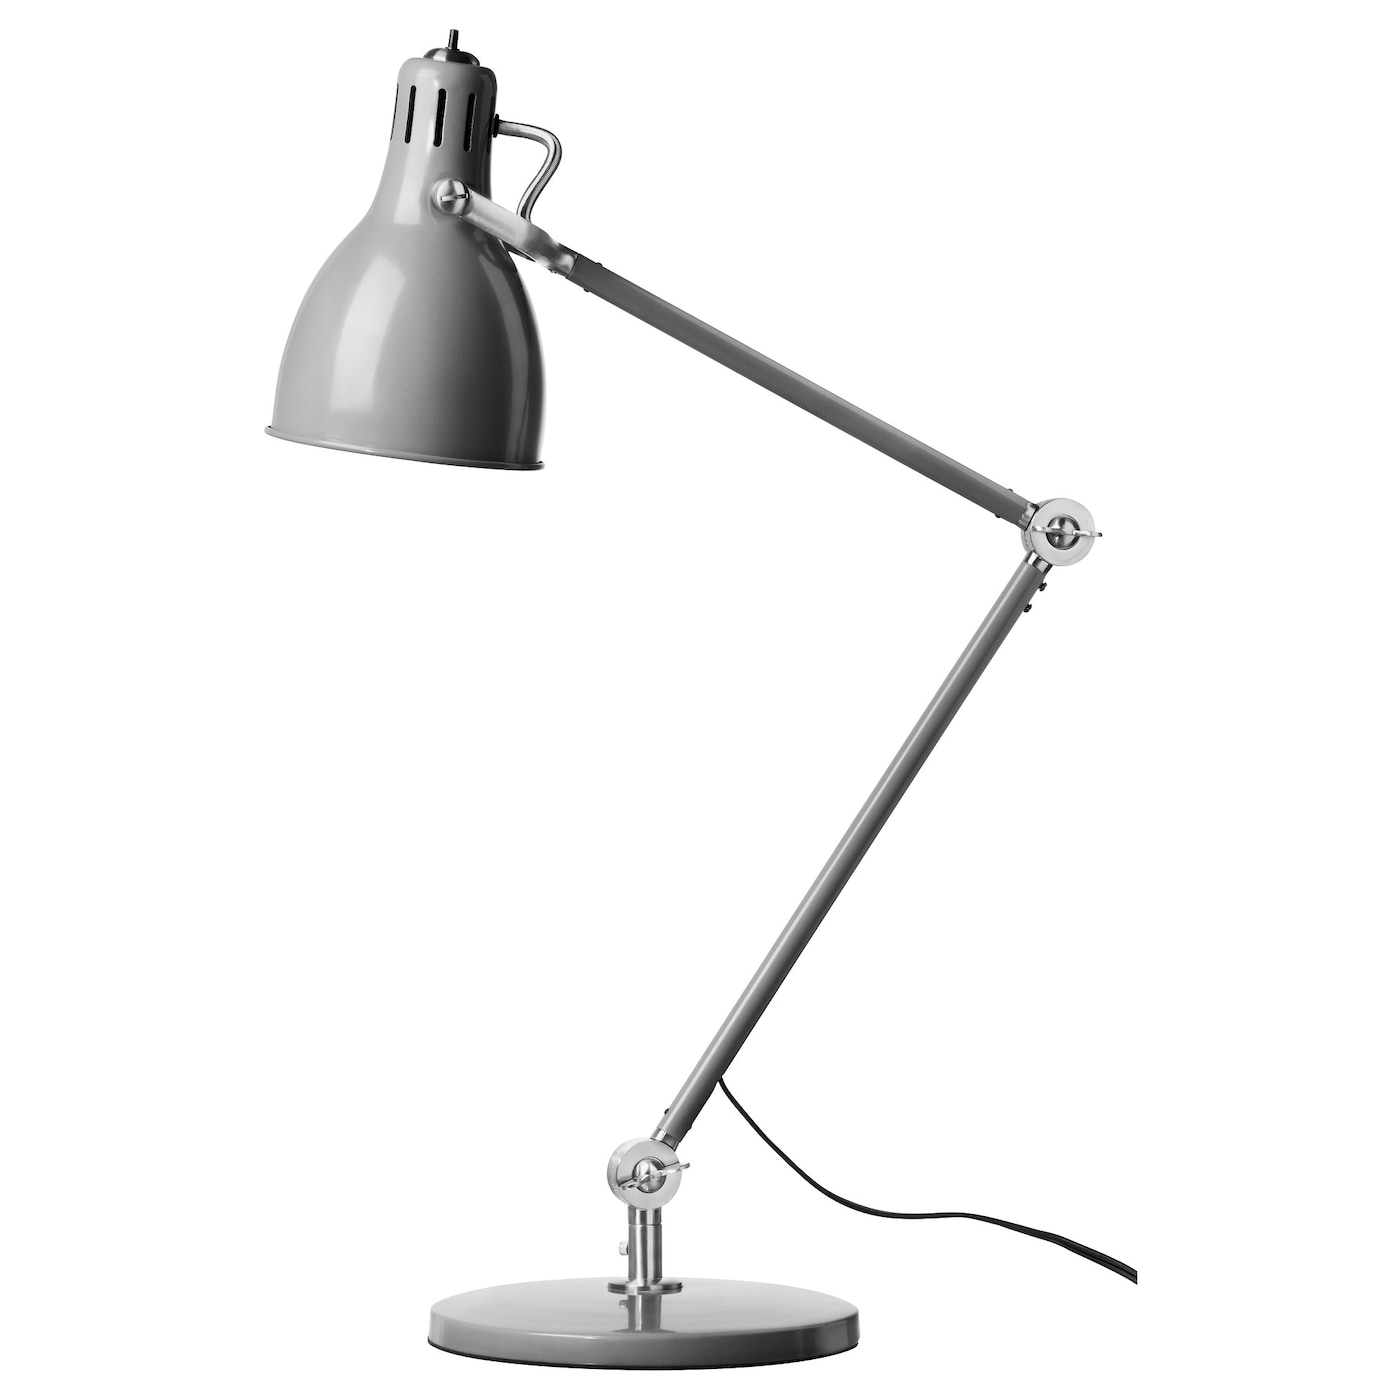 IKEA ARD Work Lamp Provides A Directed Light That Is Great For Reading